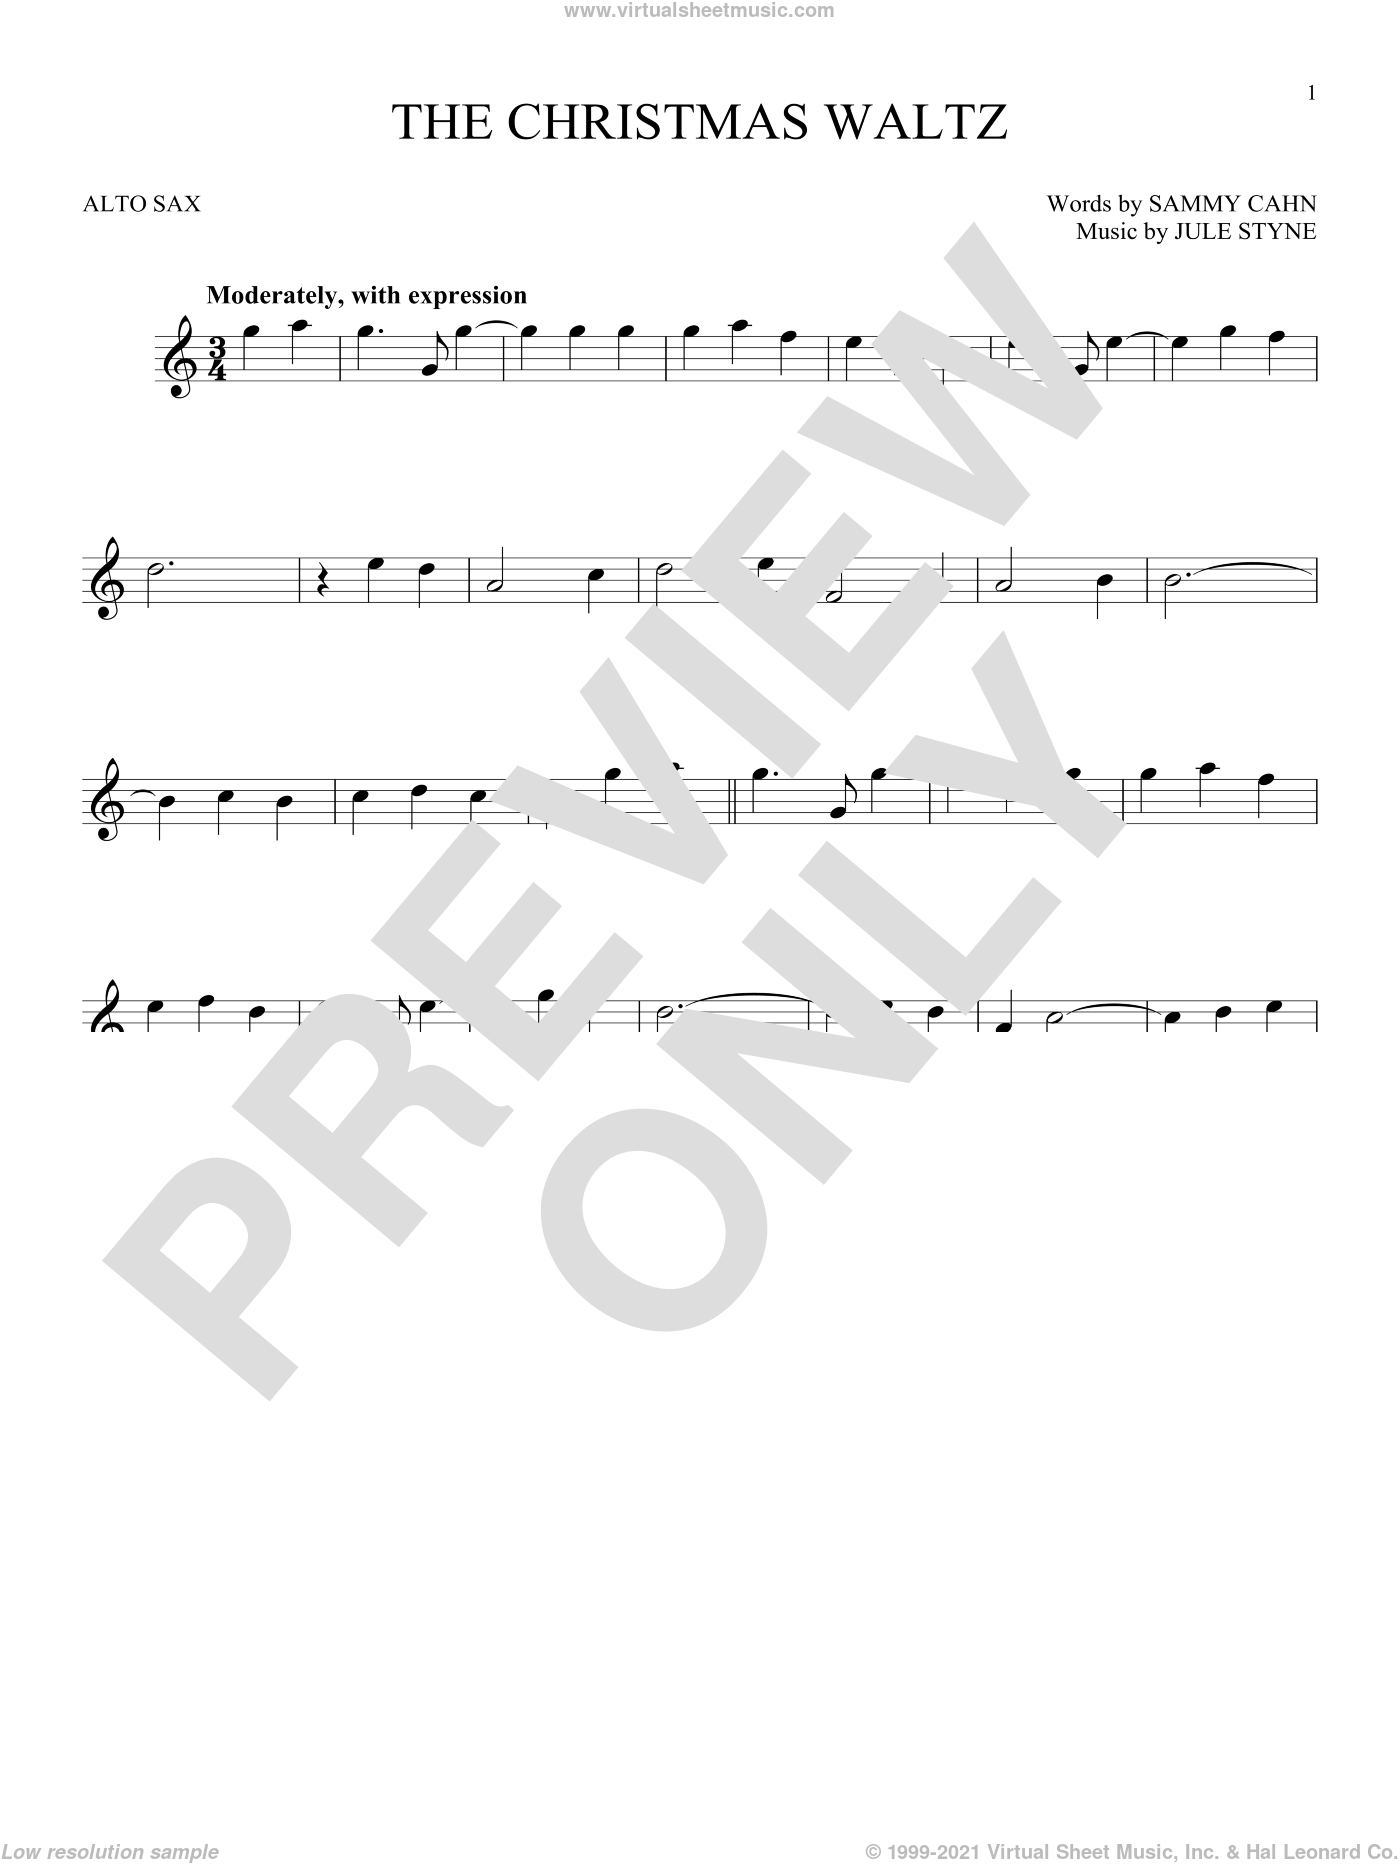 The Christmas Waltz sheet music for alto saxophone solo by Frank Sinatra, Jule Styne and Sammy Cahn, intermediate skill level